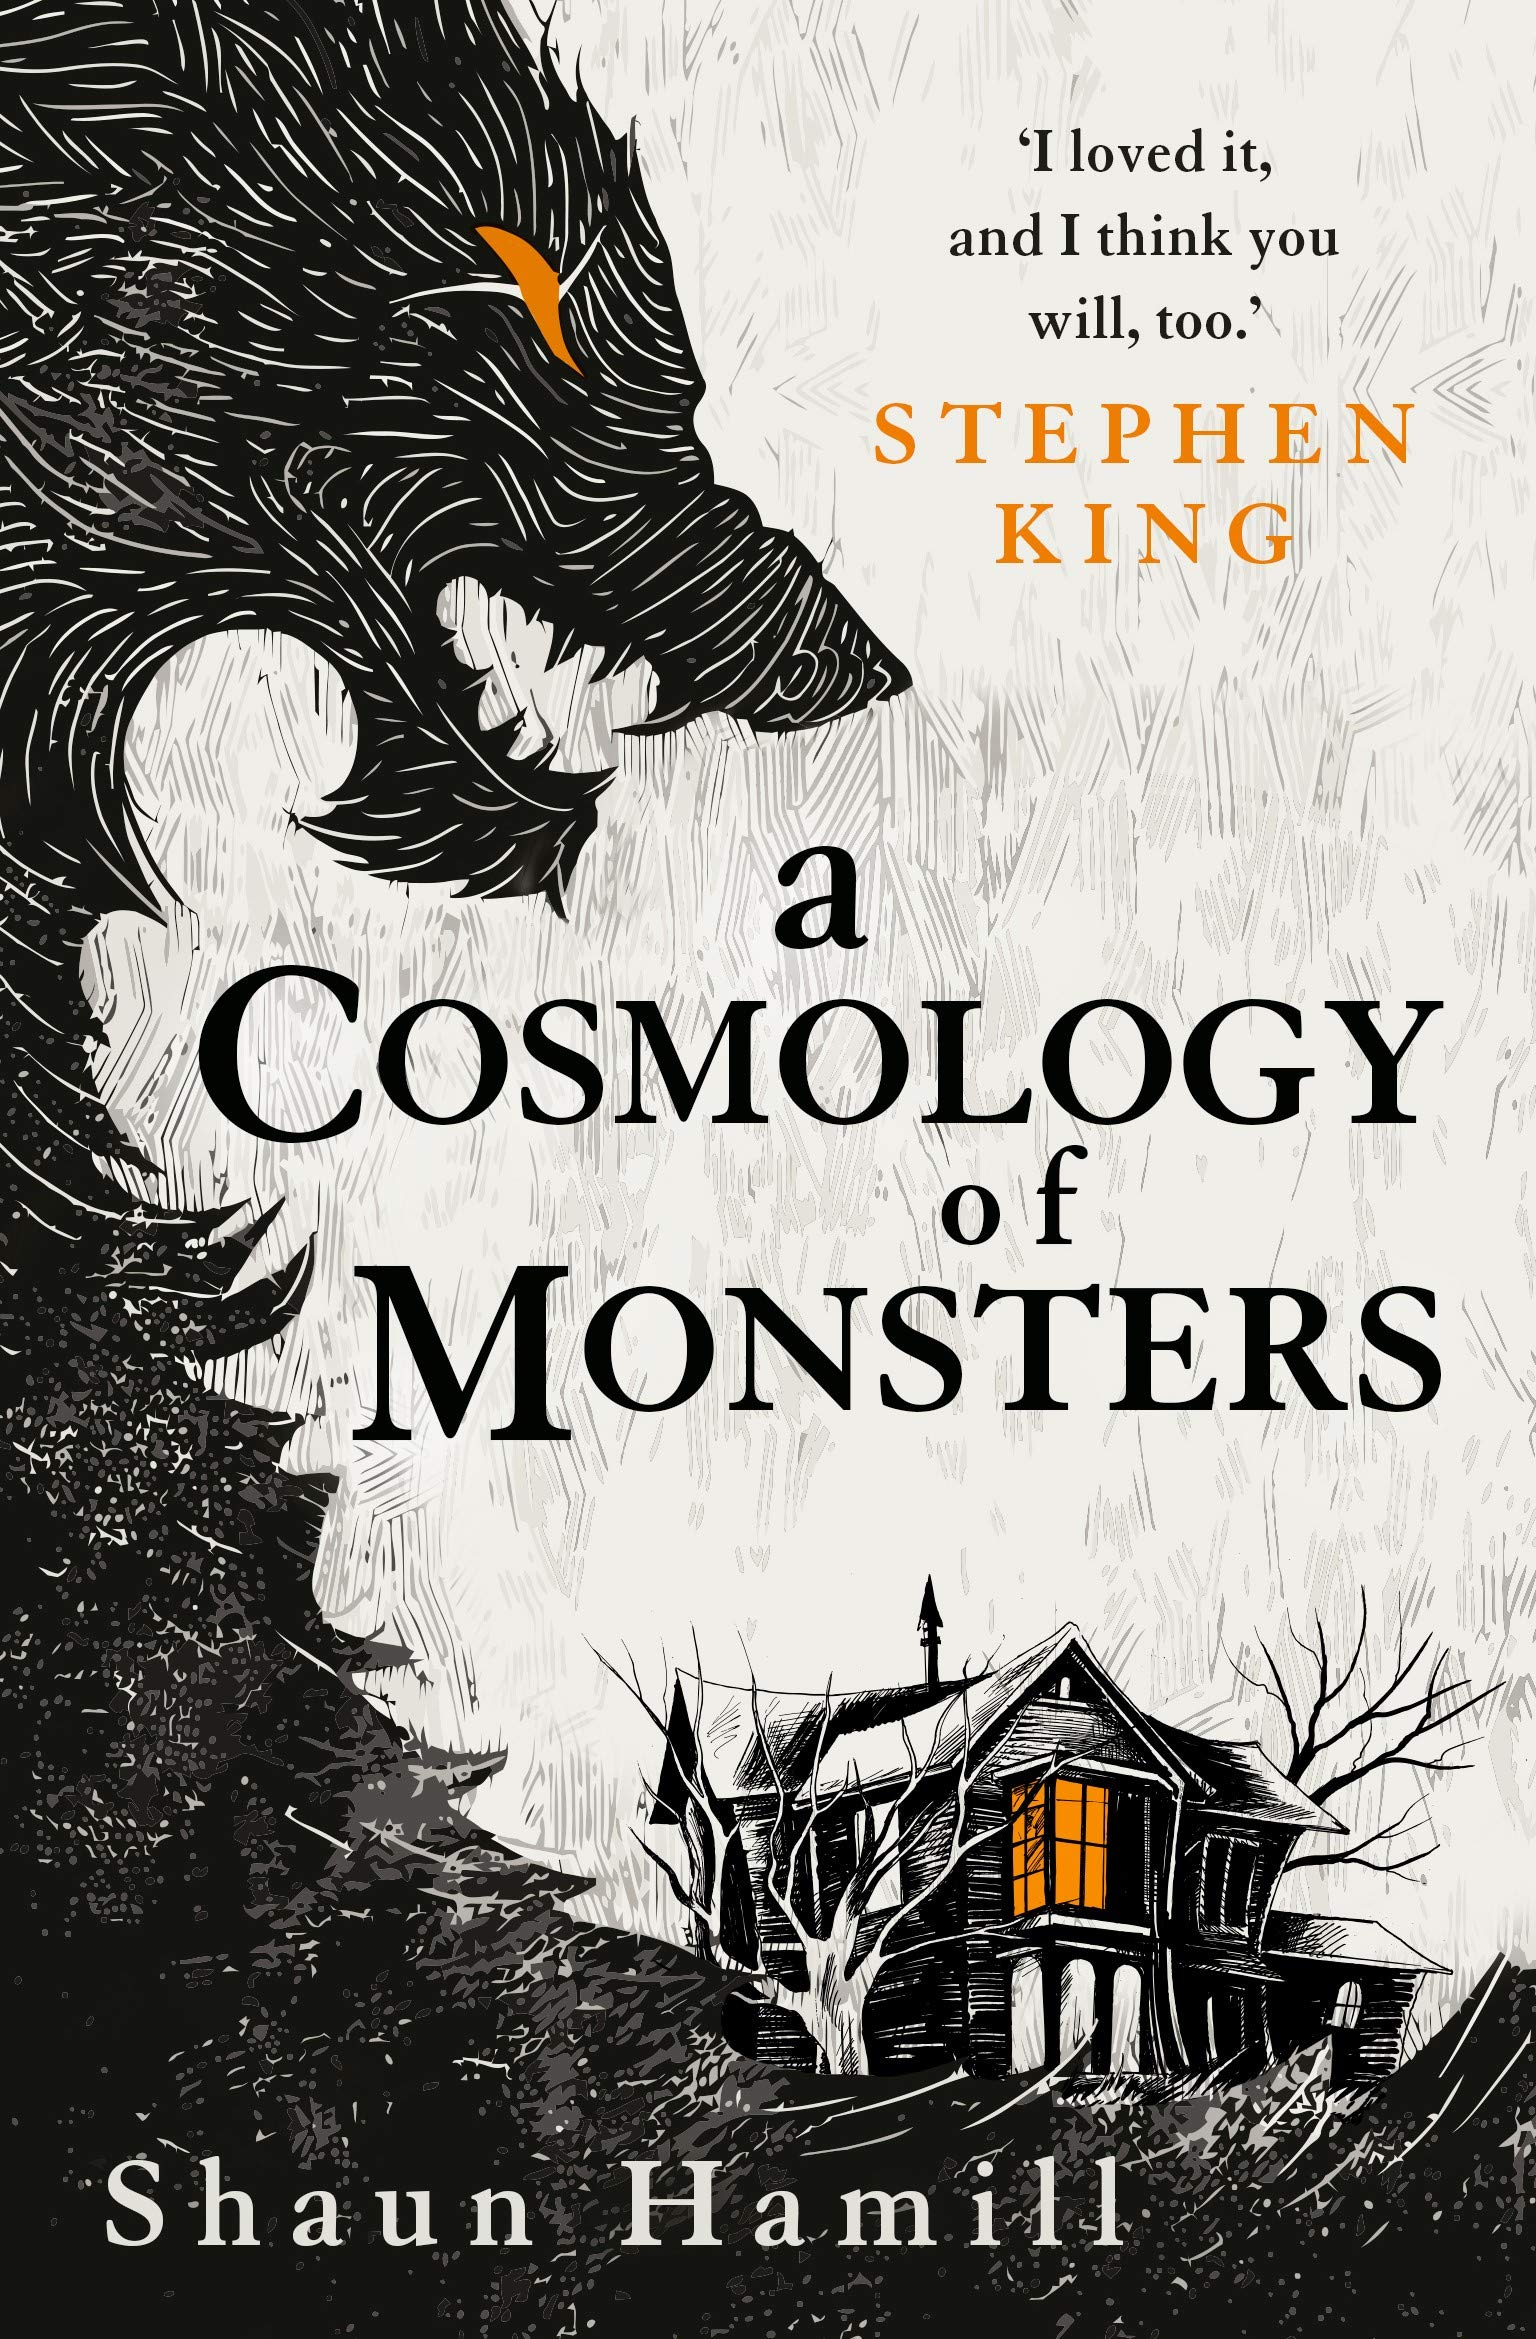 Amazon.fr - A Cosmology of Monsters - Hamill, Shaun - Livres